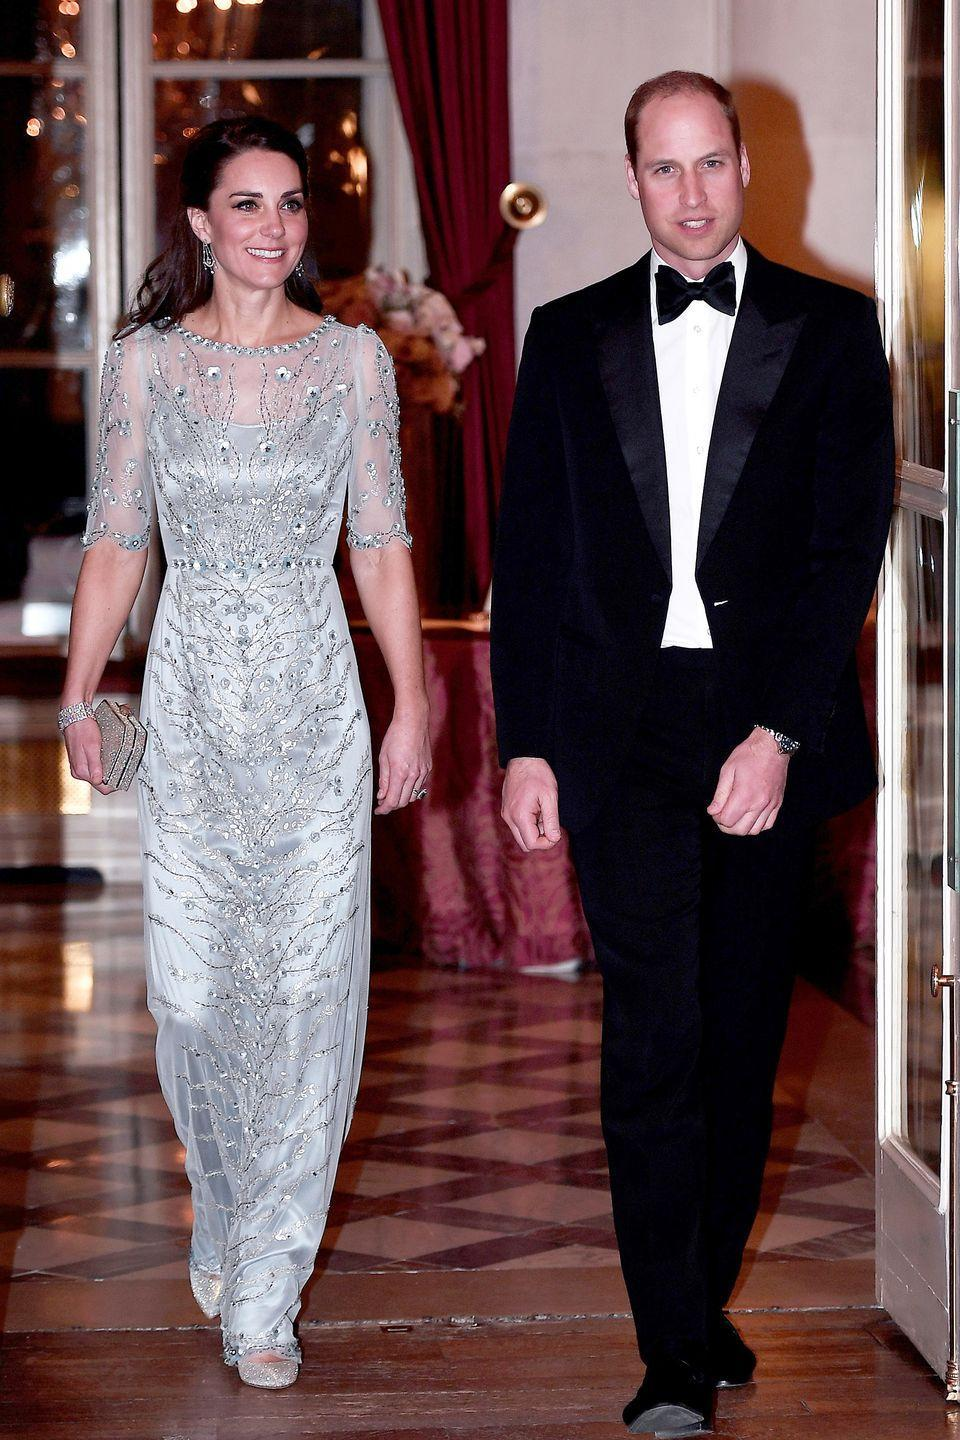 <p>In a beaded silver gown with a sheer top, bejeweled clutch, diamond bracelet, dangling earrings and shimmery pumps with Prince William at the British Embassy in Paris for a dinner.</p>